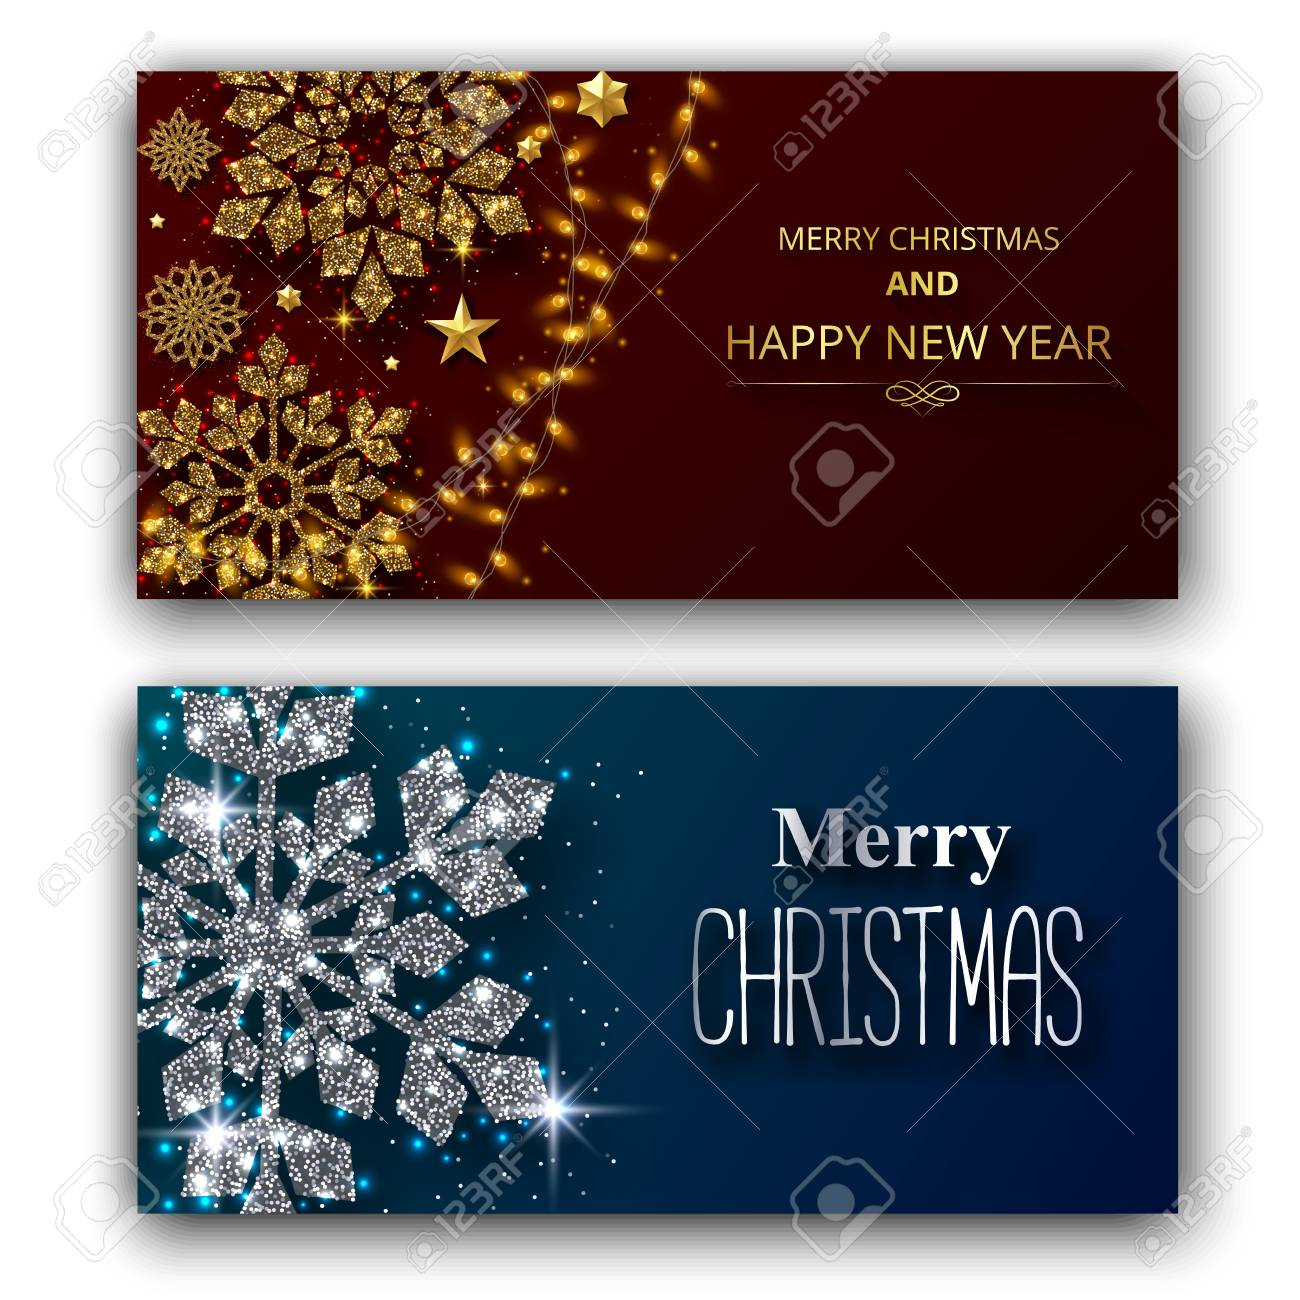 Set of Merry Christmas and Happy New Year shiny greeting cards with beautiful snowflakes and lights. Vector background. - 127702061